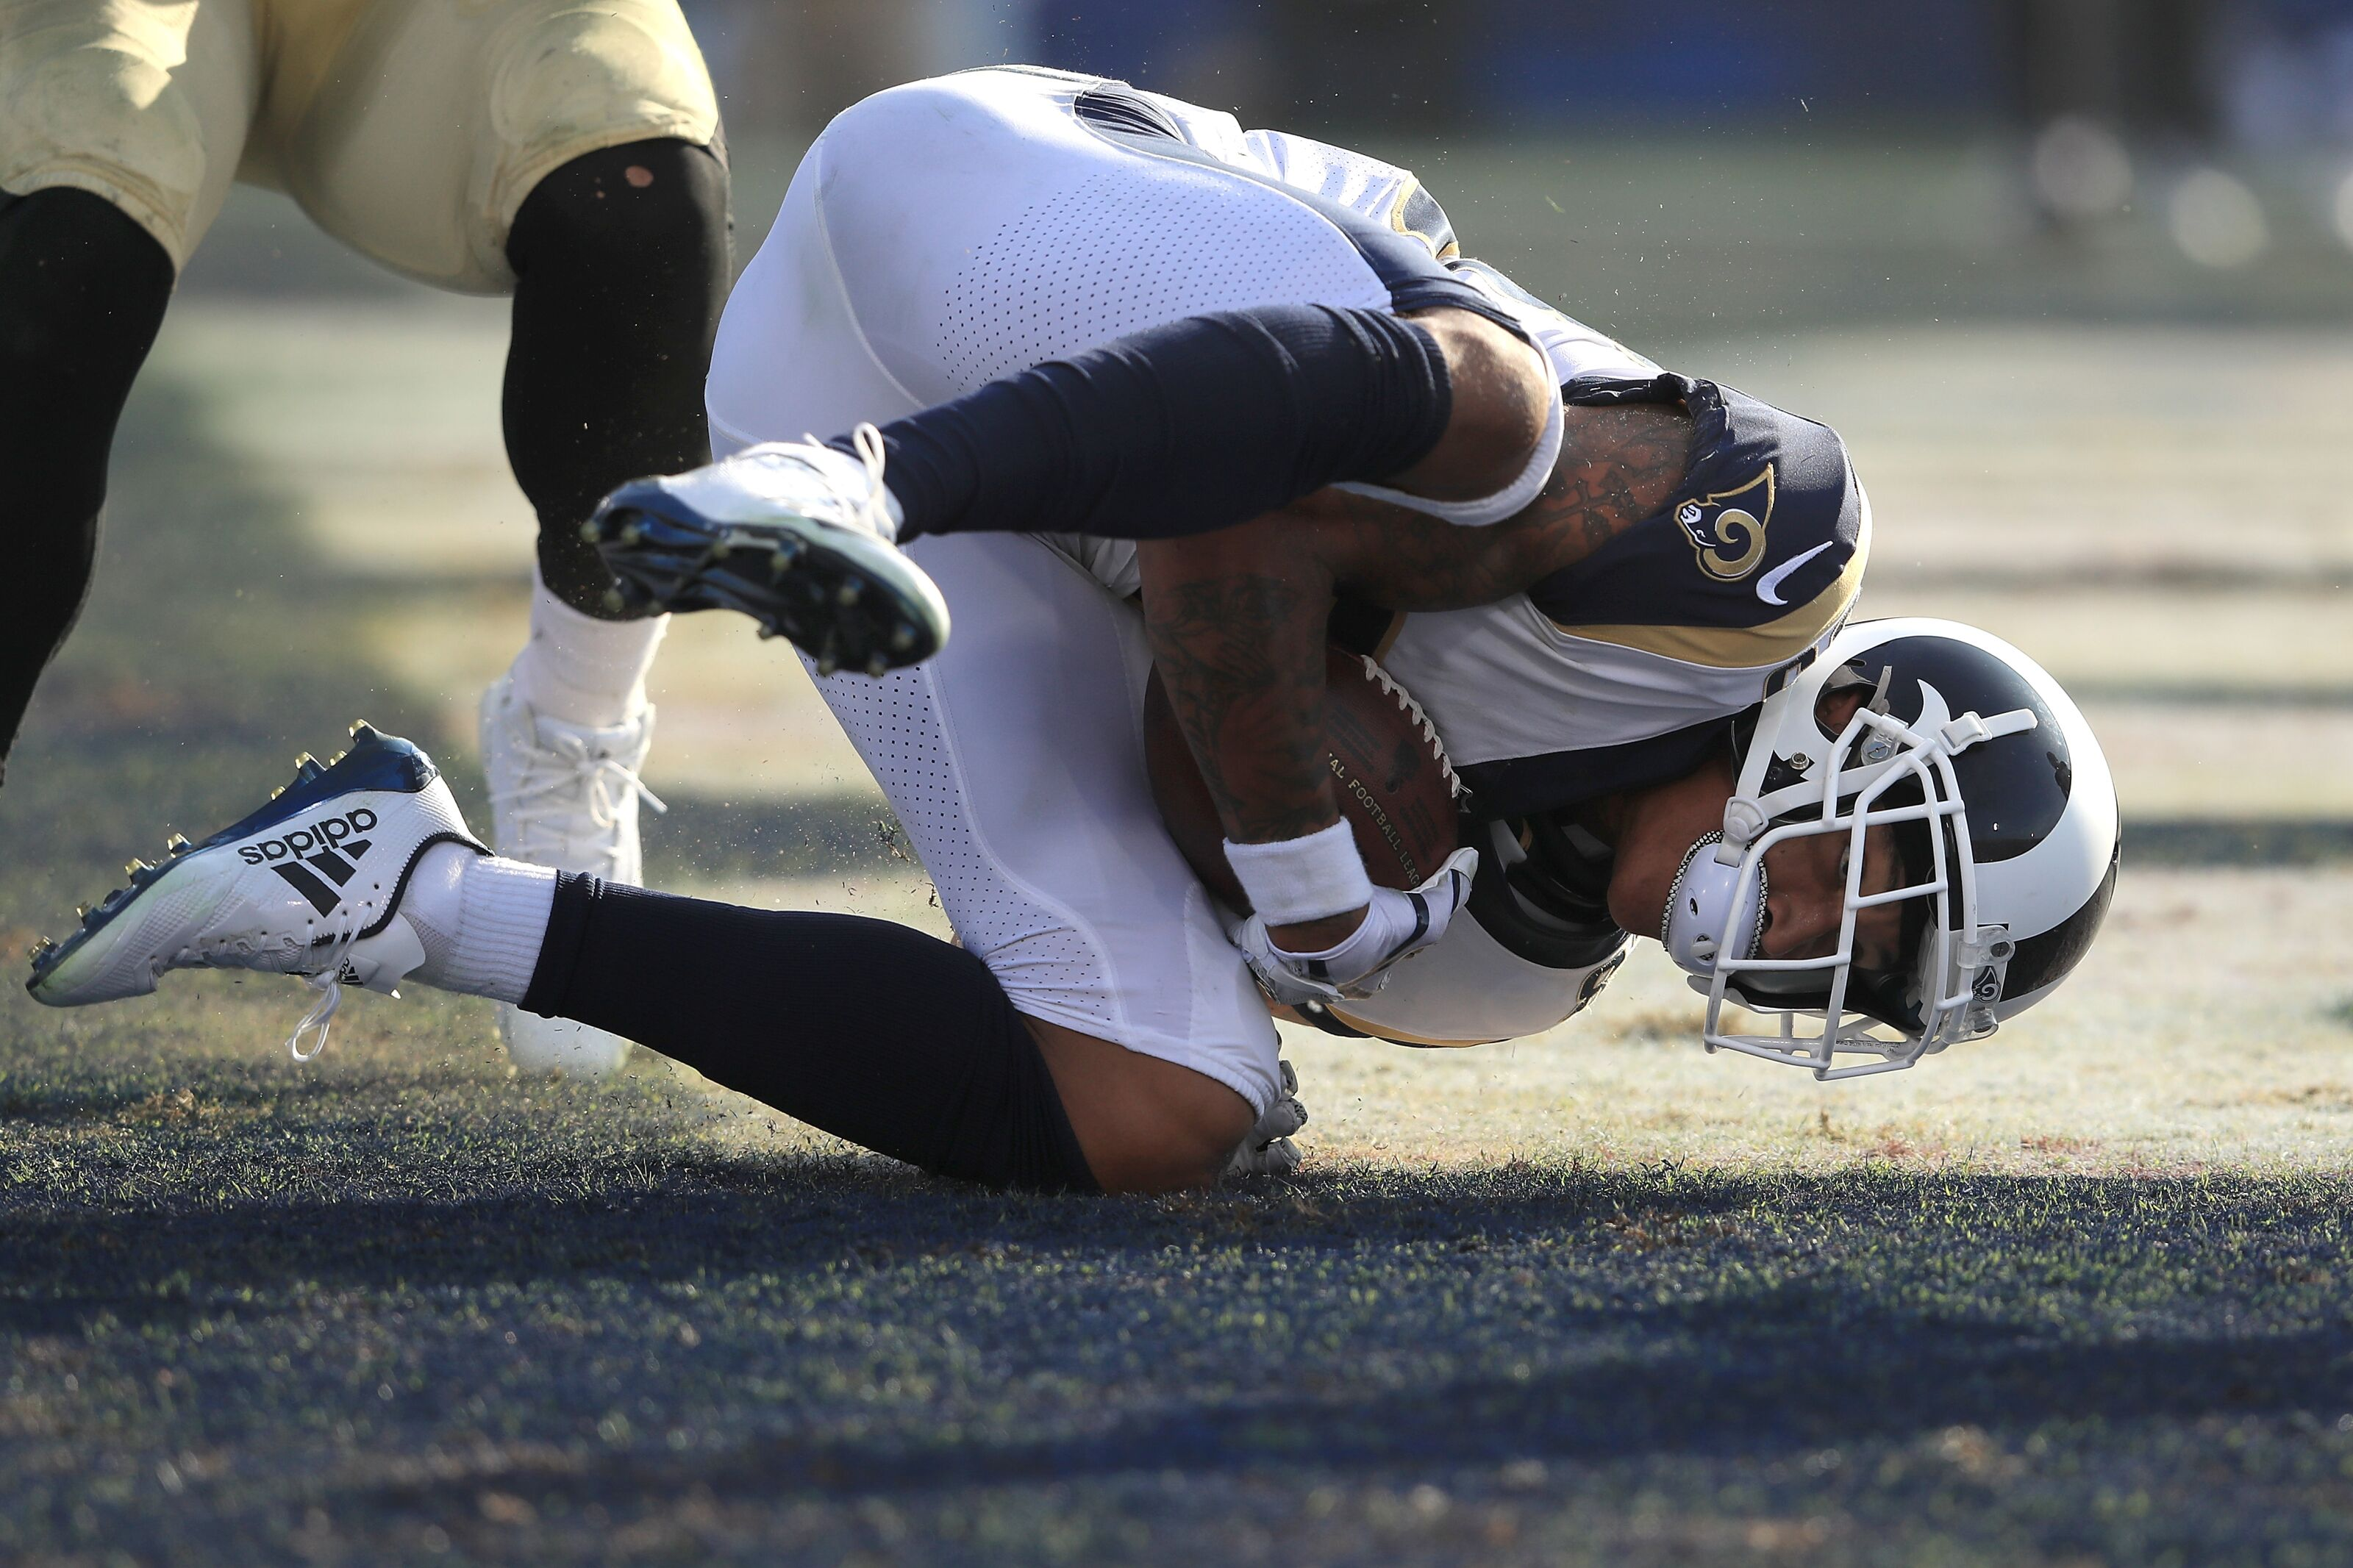 Los Angeles Rams: Backup receivers missed opportunity to shine in first preseason game